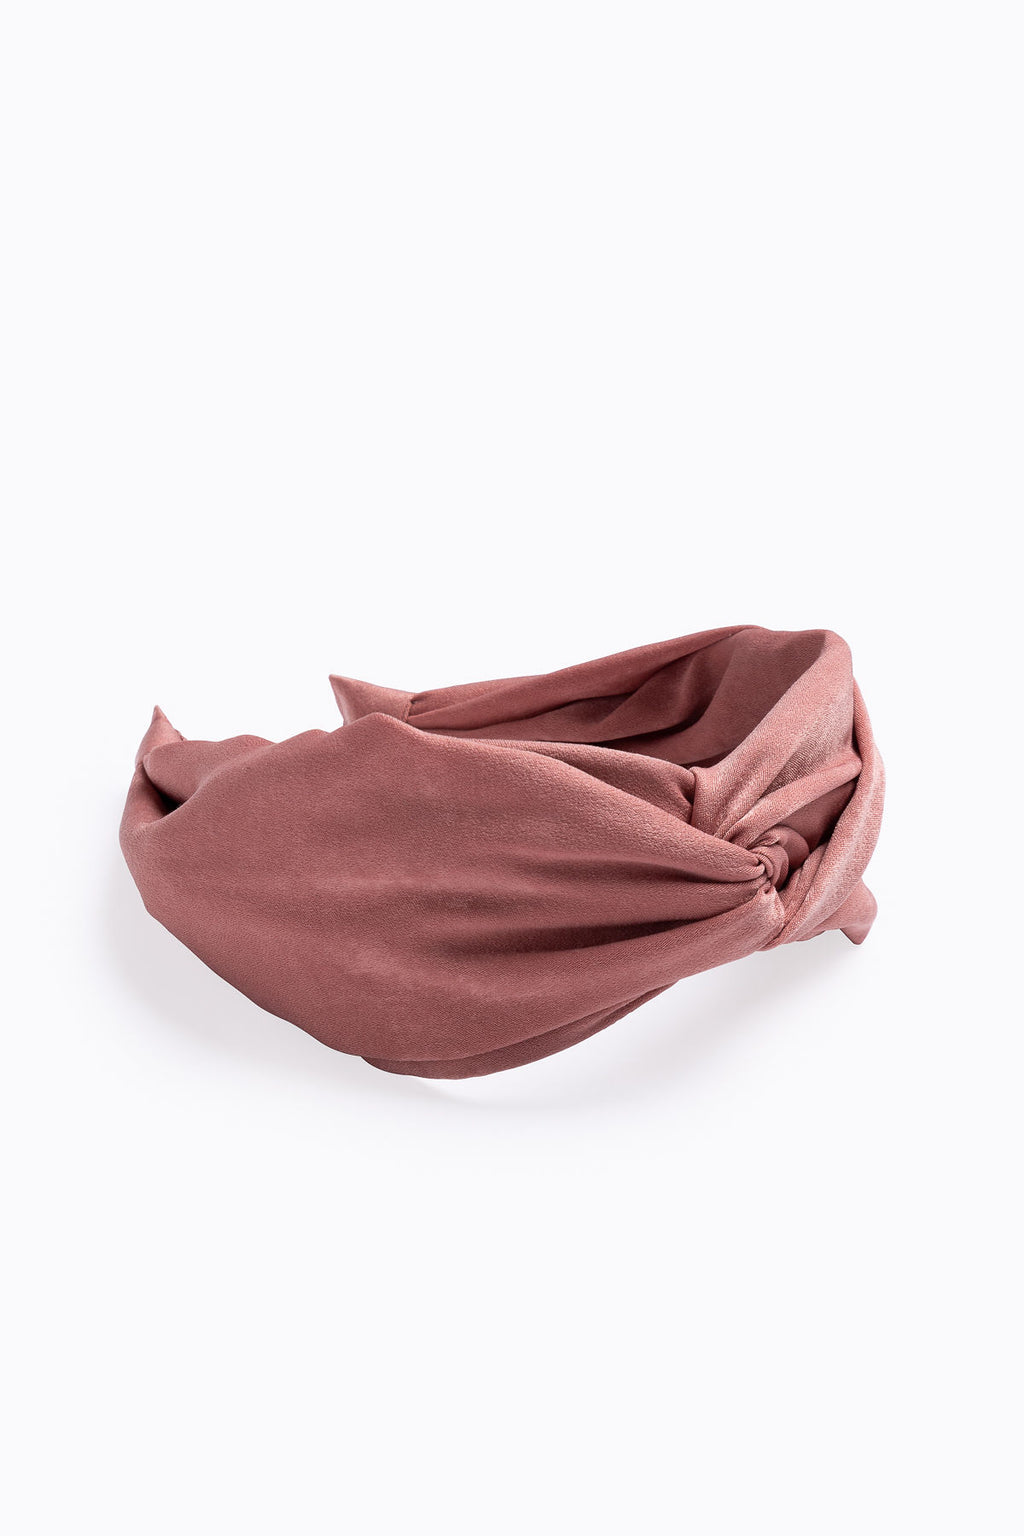 Velvet Fabric Twist Headband in Peach